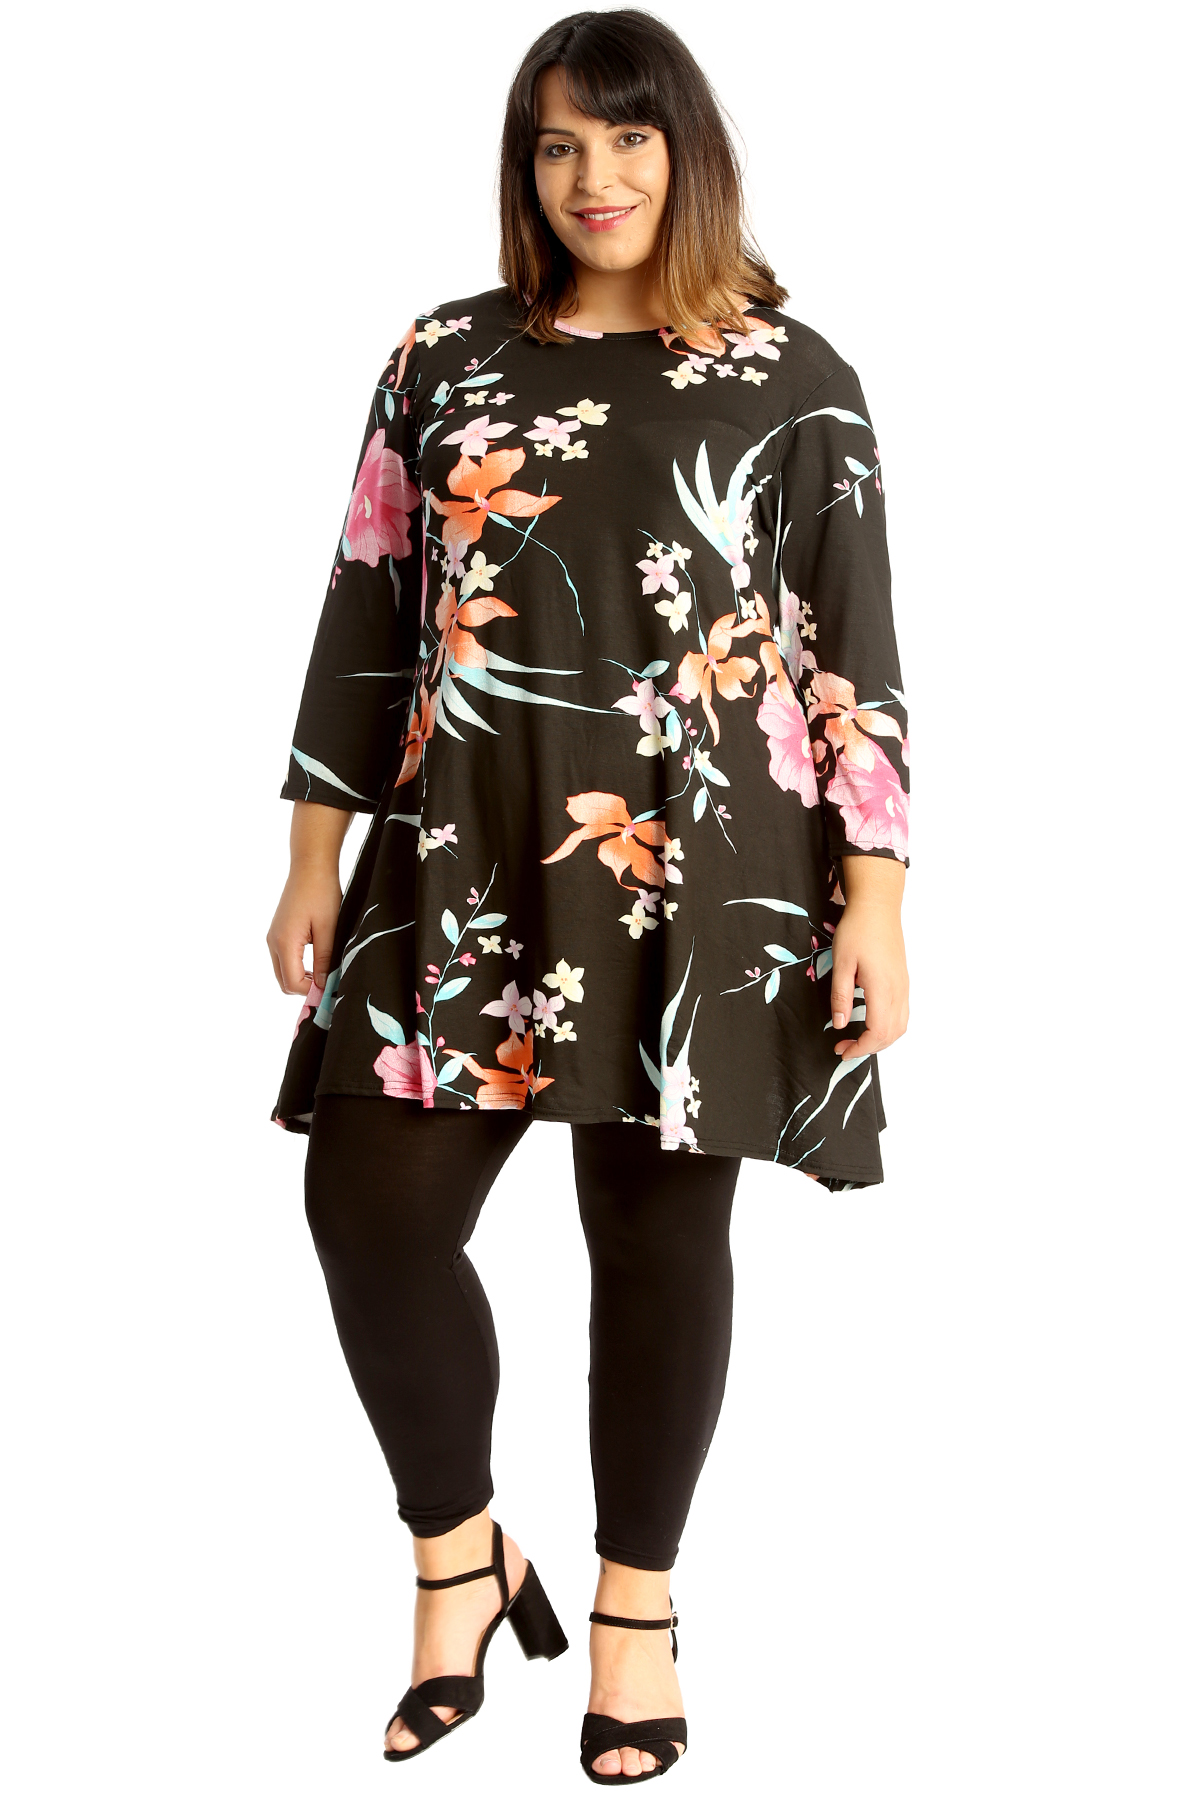 c392a4b435d833 New Womens Plus Size Swing Top Ladies Floral Print Skater Style ...